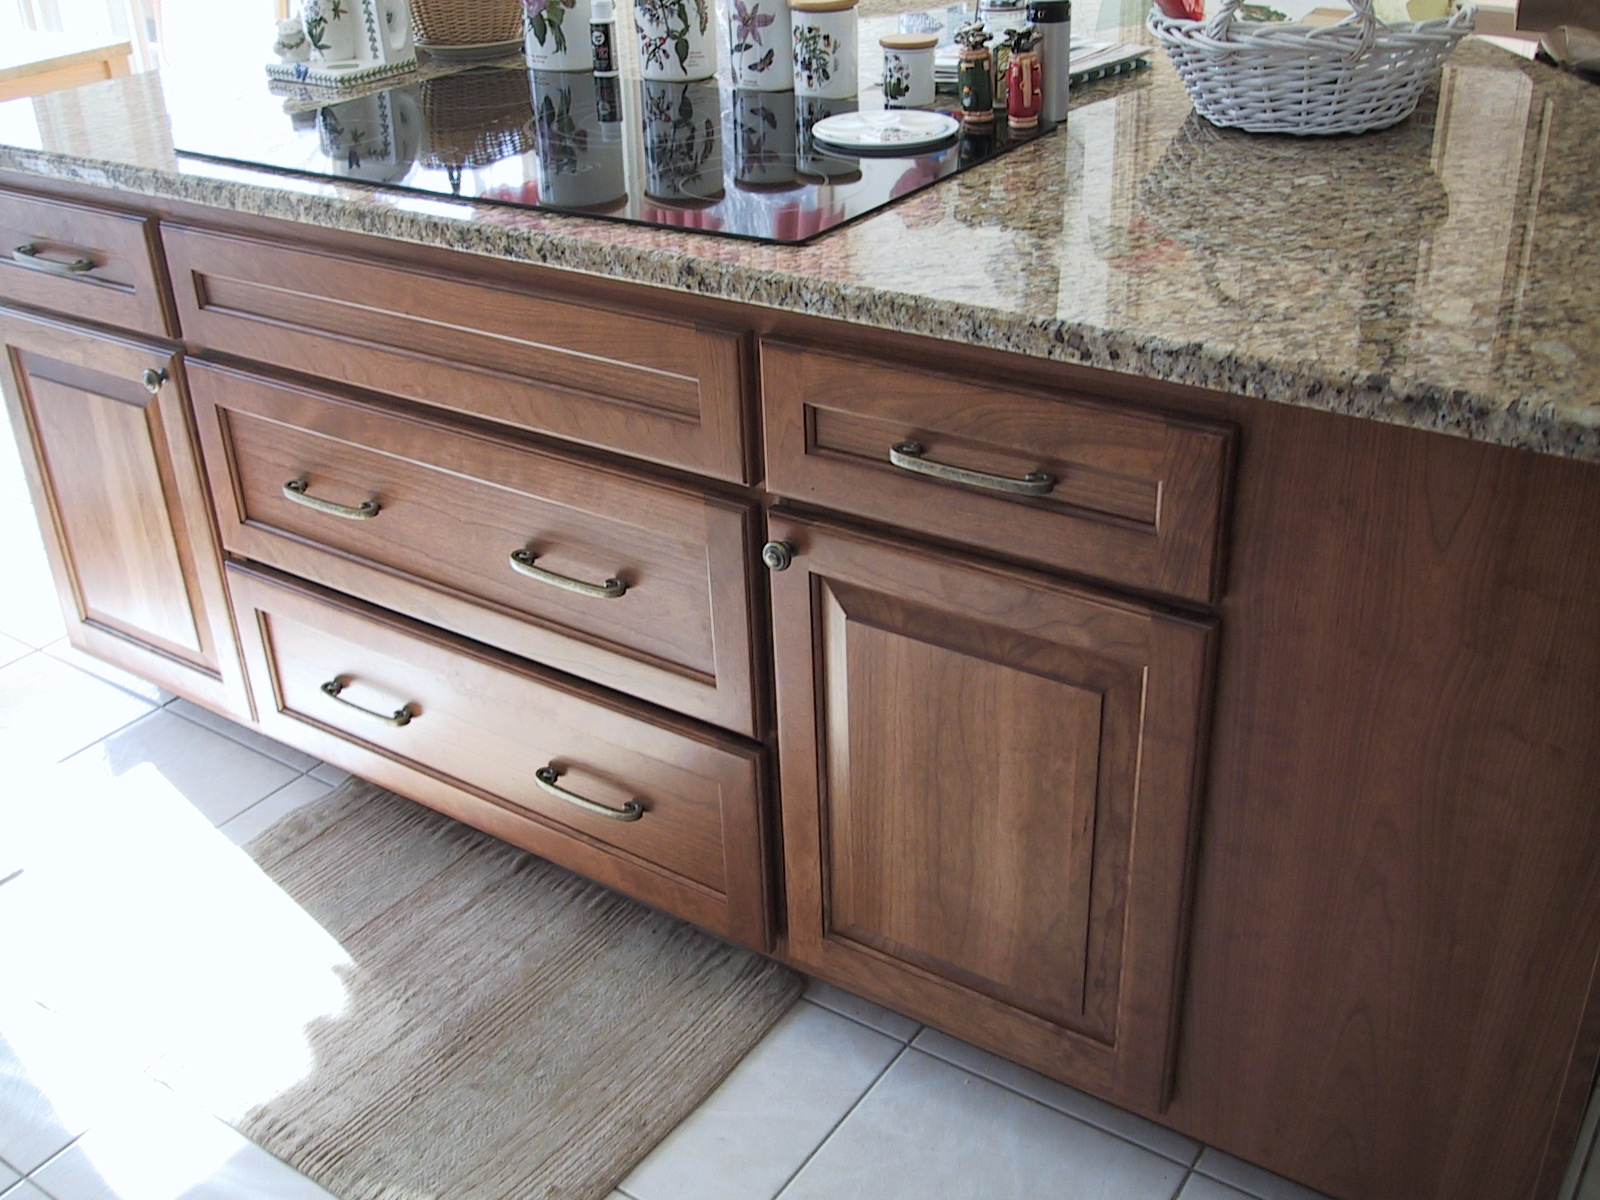 Replace the Cabinets and Keep the Granite Countertops?